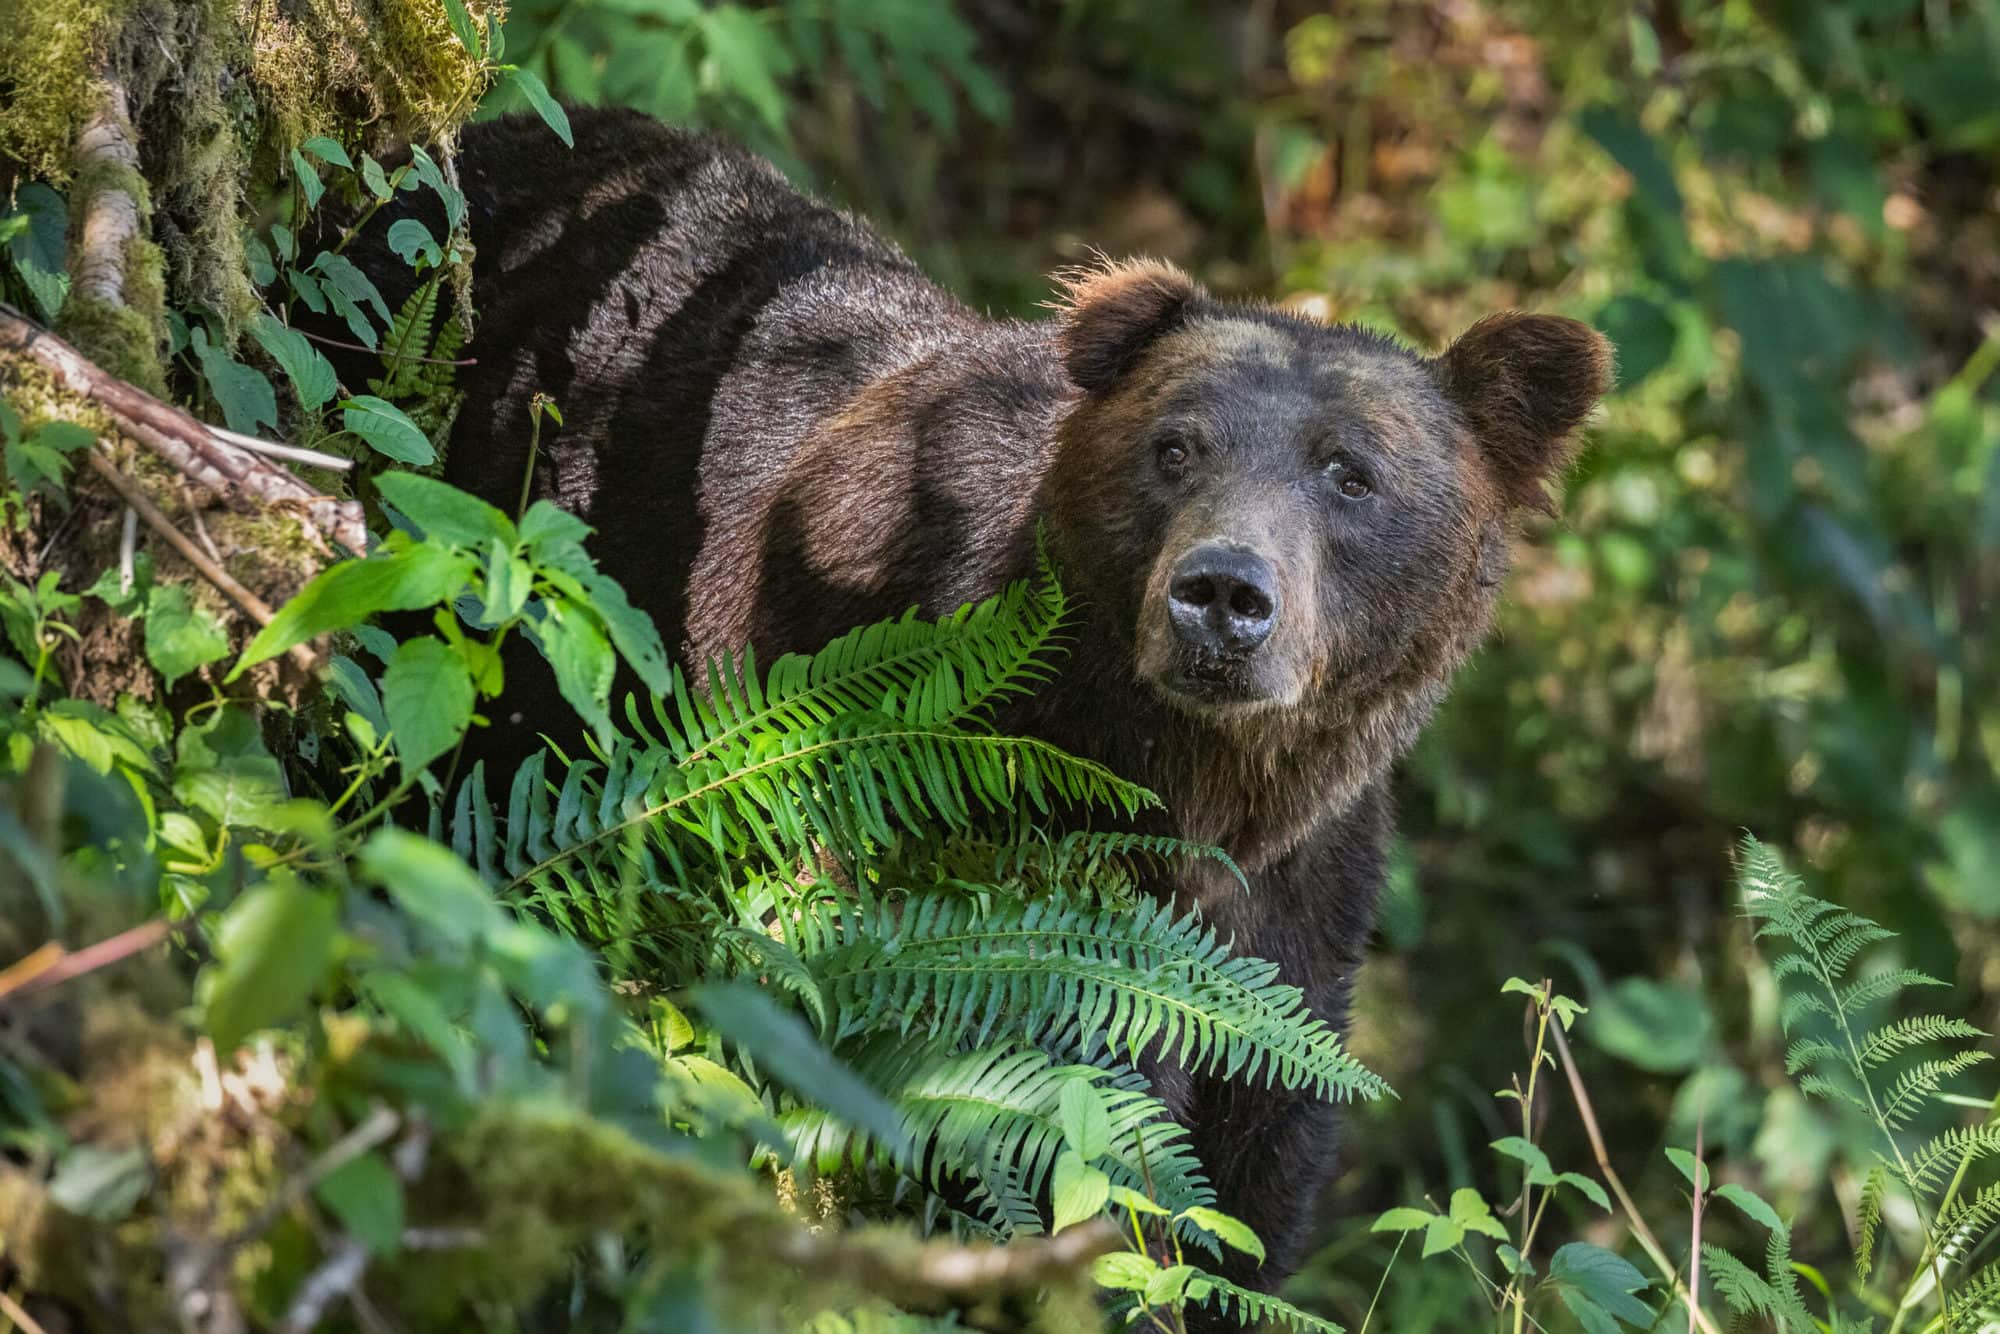 Grizzly Bear standing in ferns and bushes